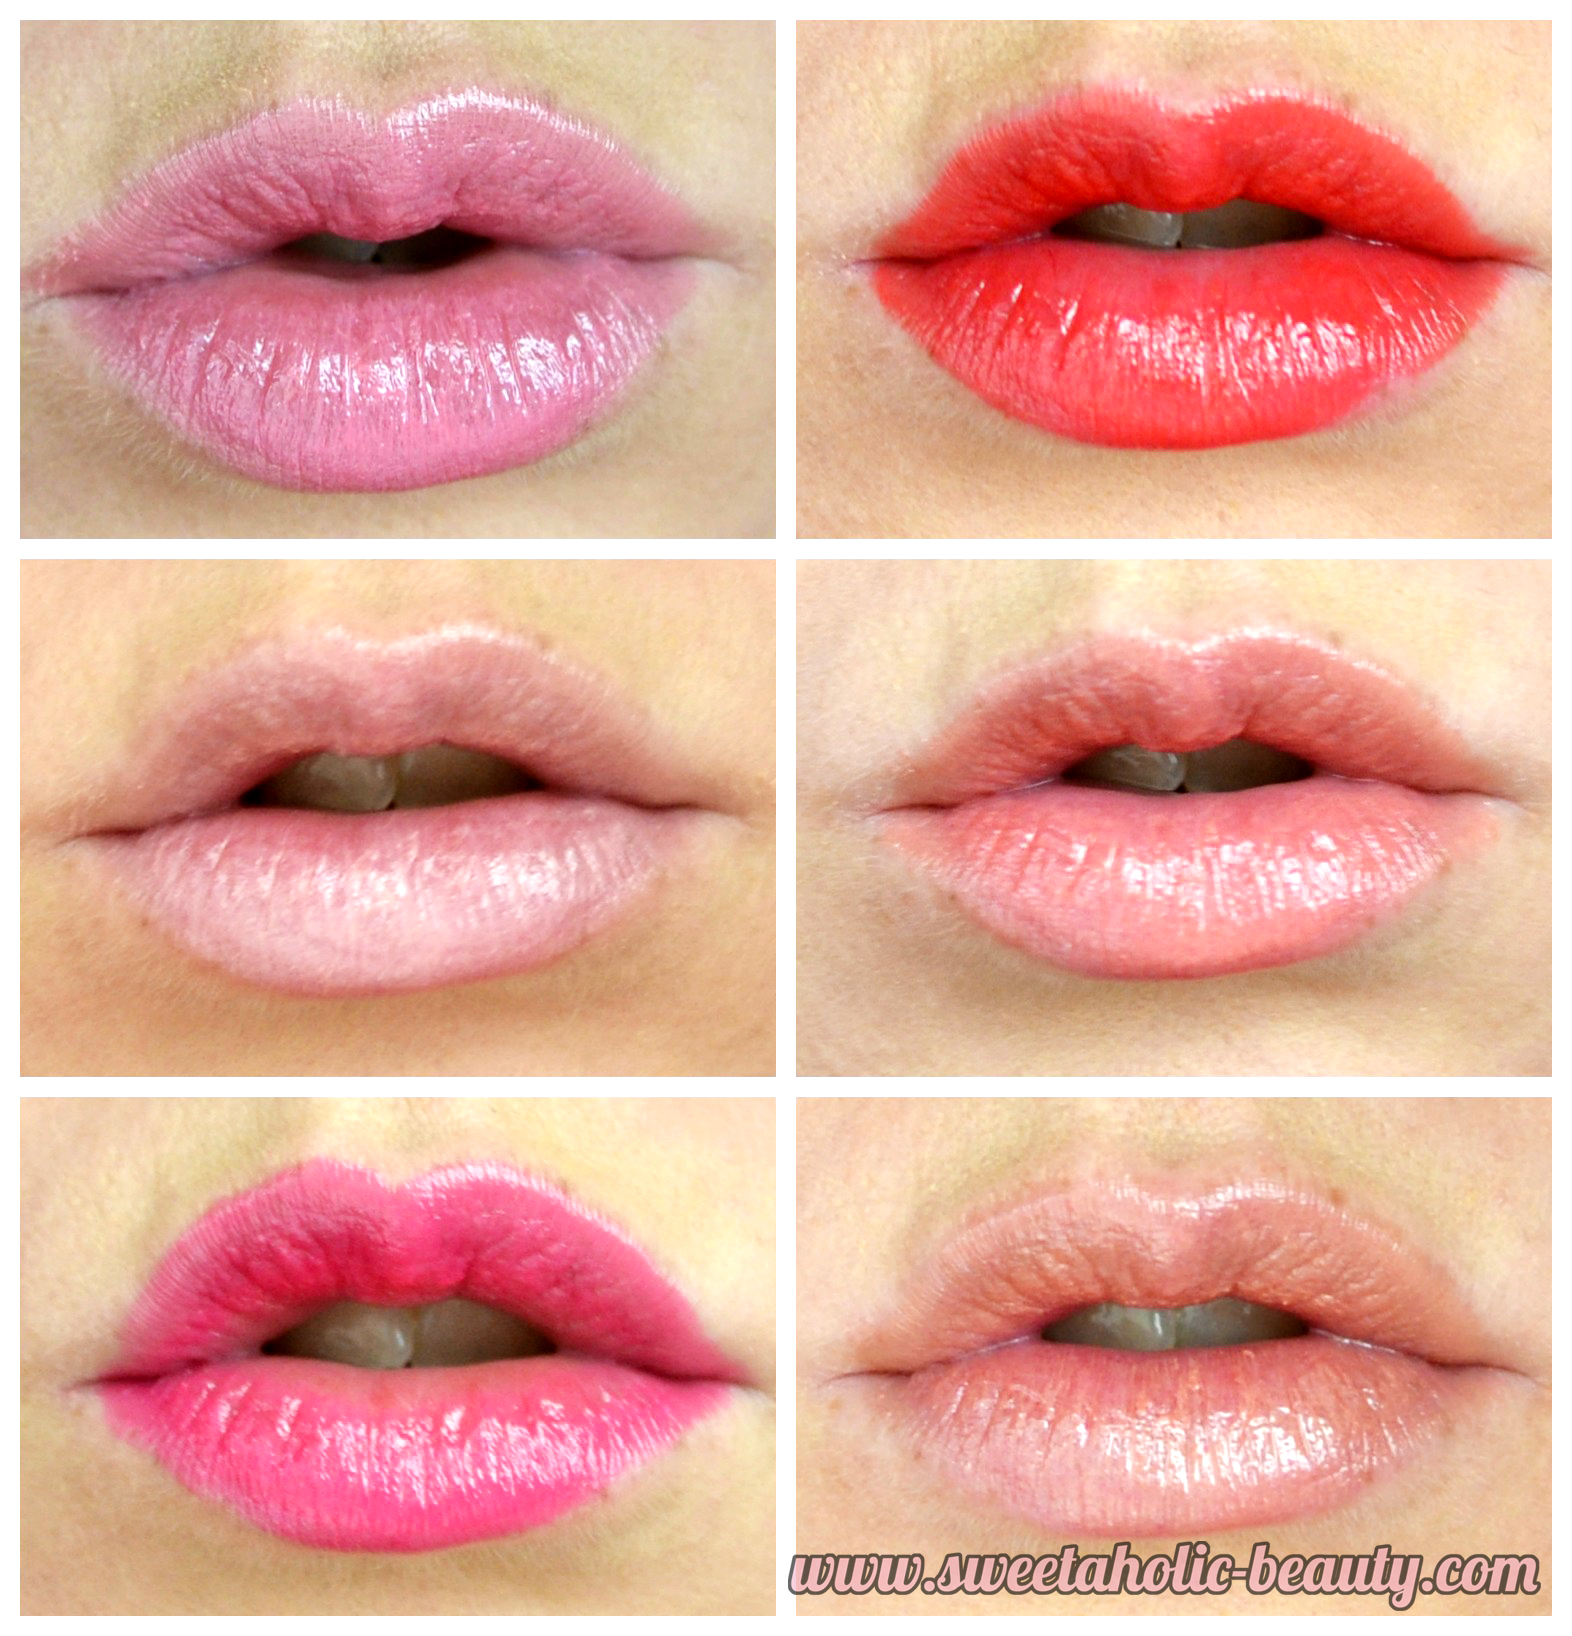 Rimmel London Moisture Renew Sheer and Shine Lipstick Collection Review & Swatches - Sweetaholic Beauty